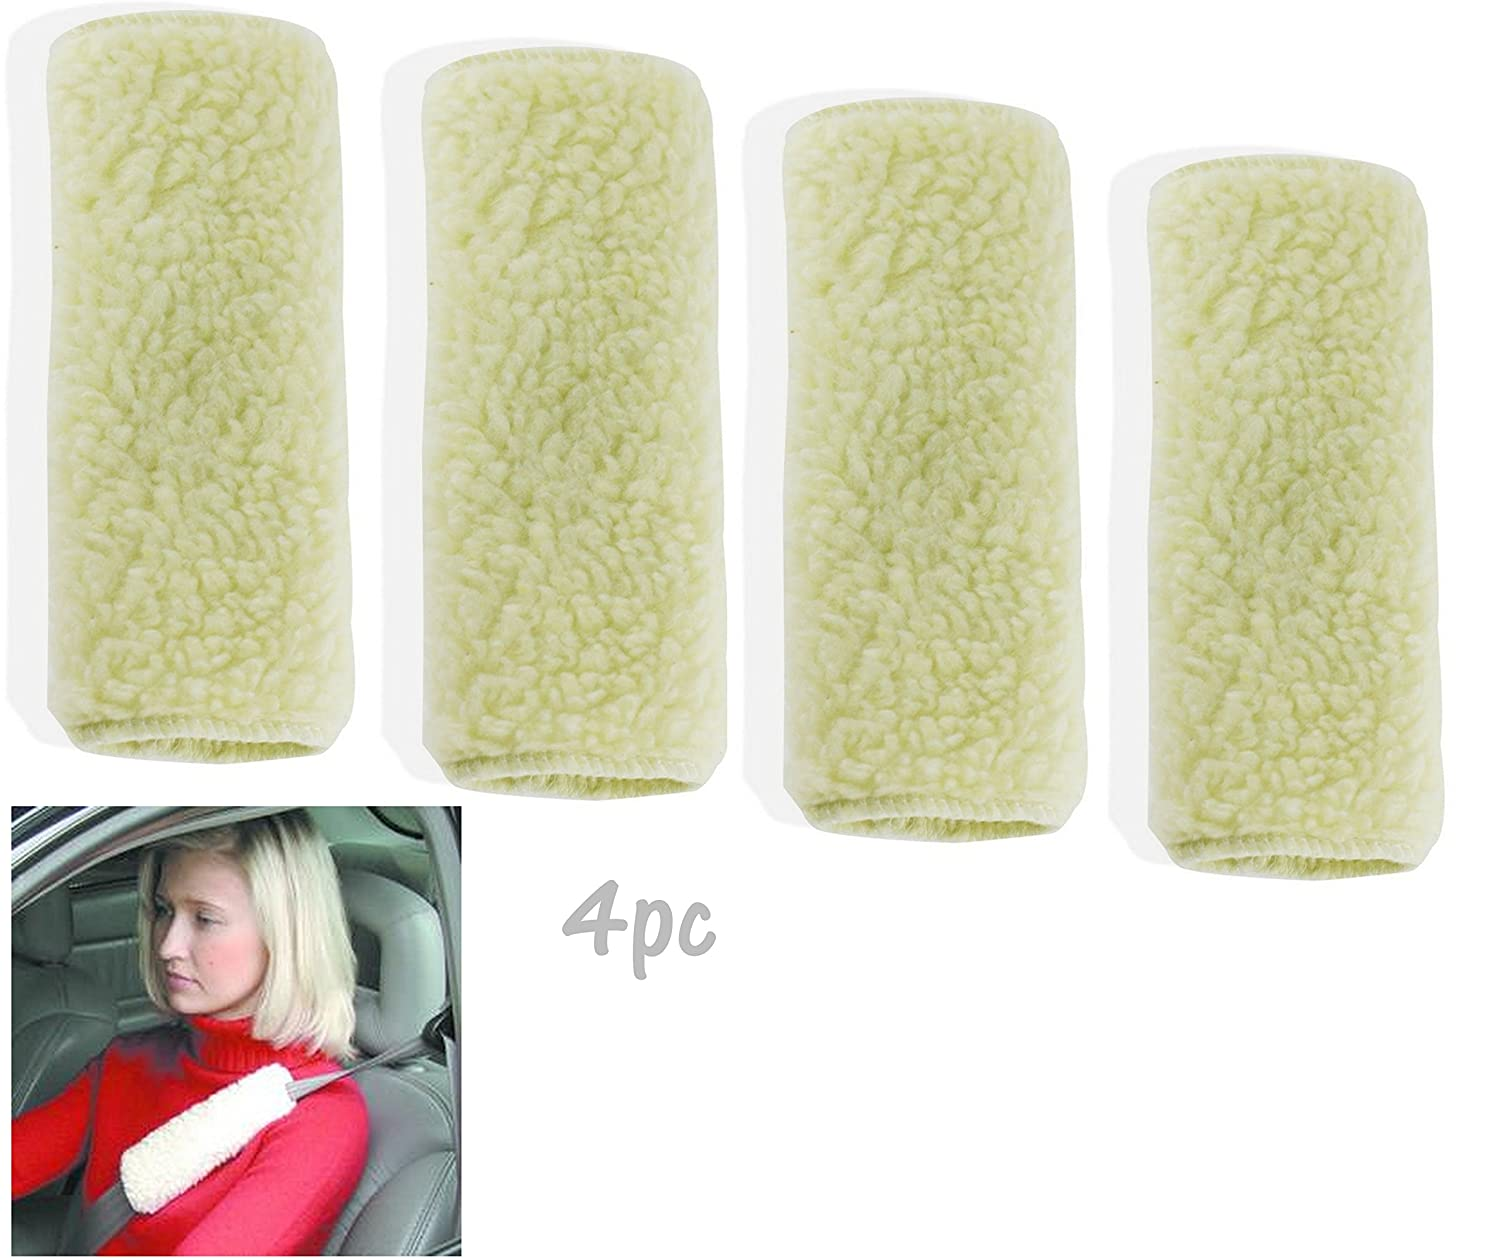 2pc ALAZCO Reversible Seat Belt Soft Comfort Shoulder Pad 9 Machine Washable Synthetic Wool AZ124SBP